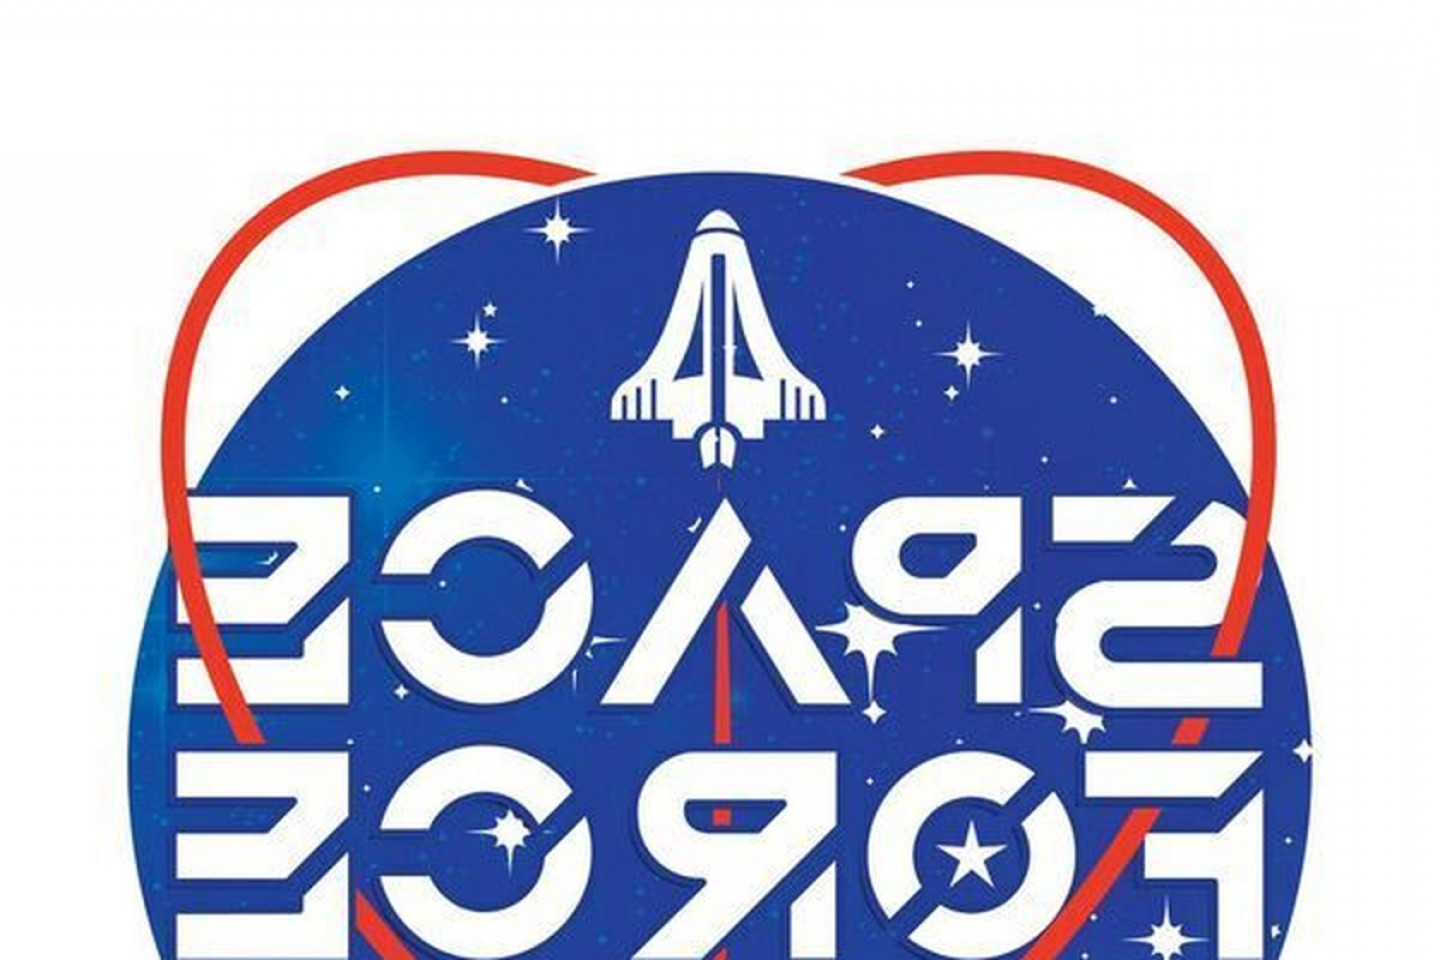 United States Armed Forces Logo Vector: Trump Space Force Logo Branding Military Branch